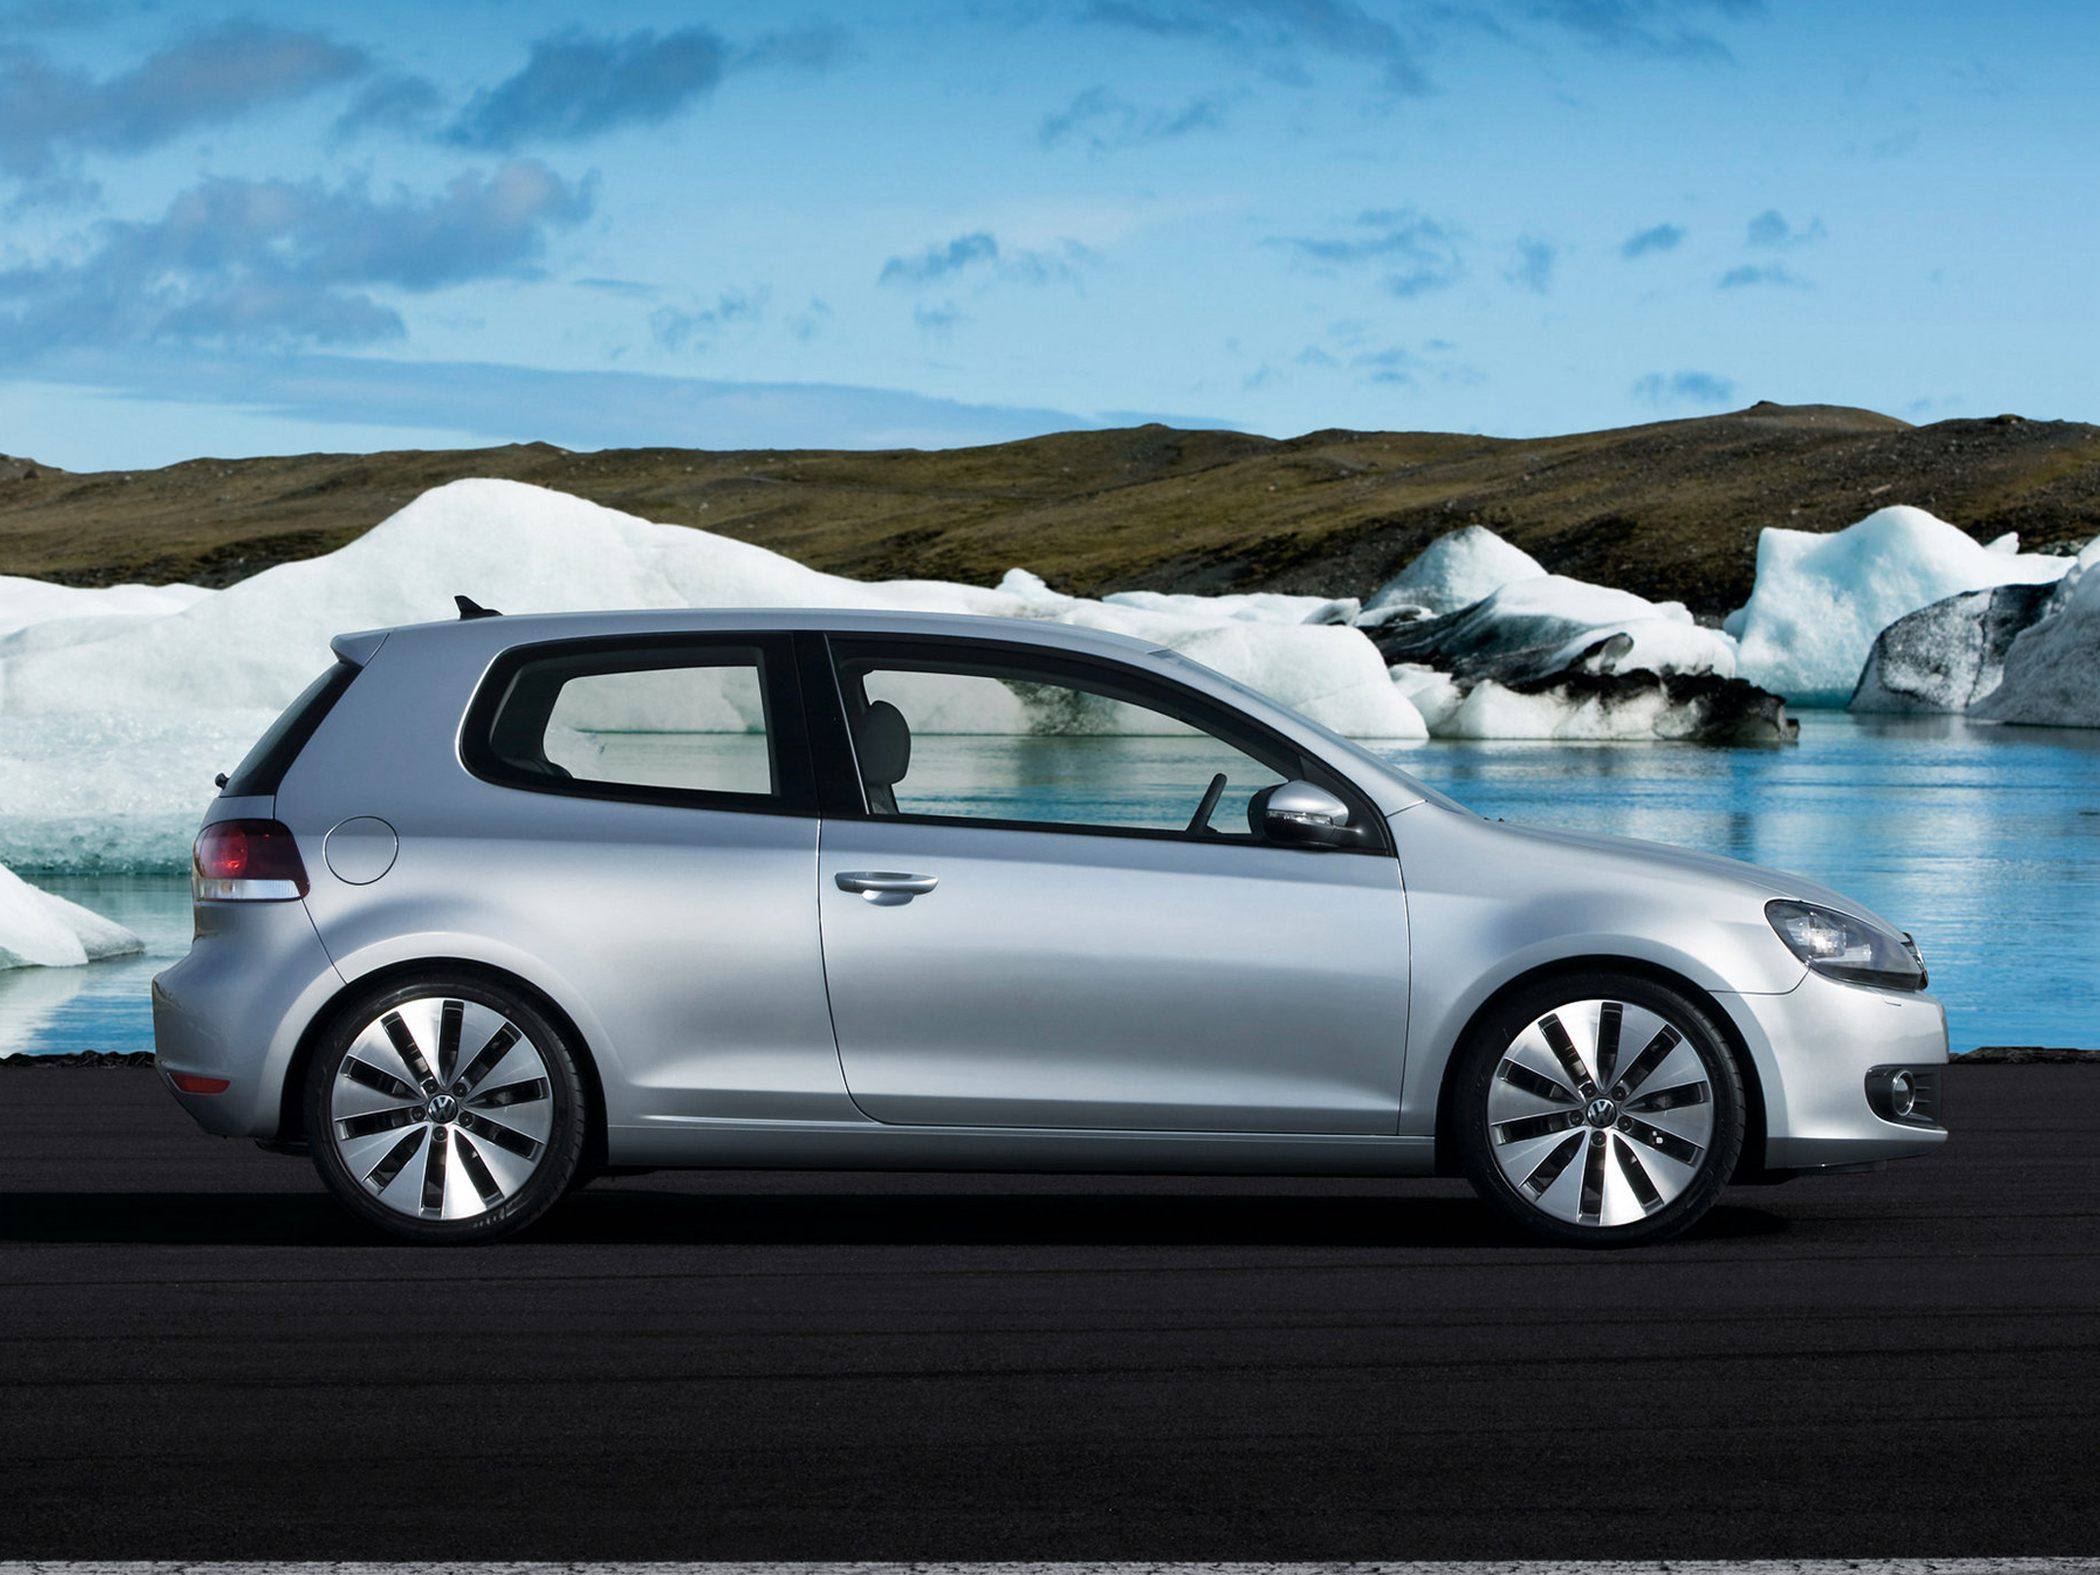 VW Golf Coupe image #18